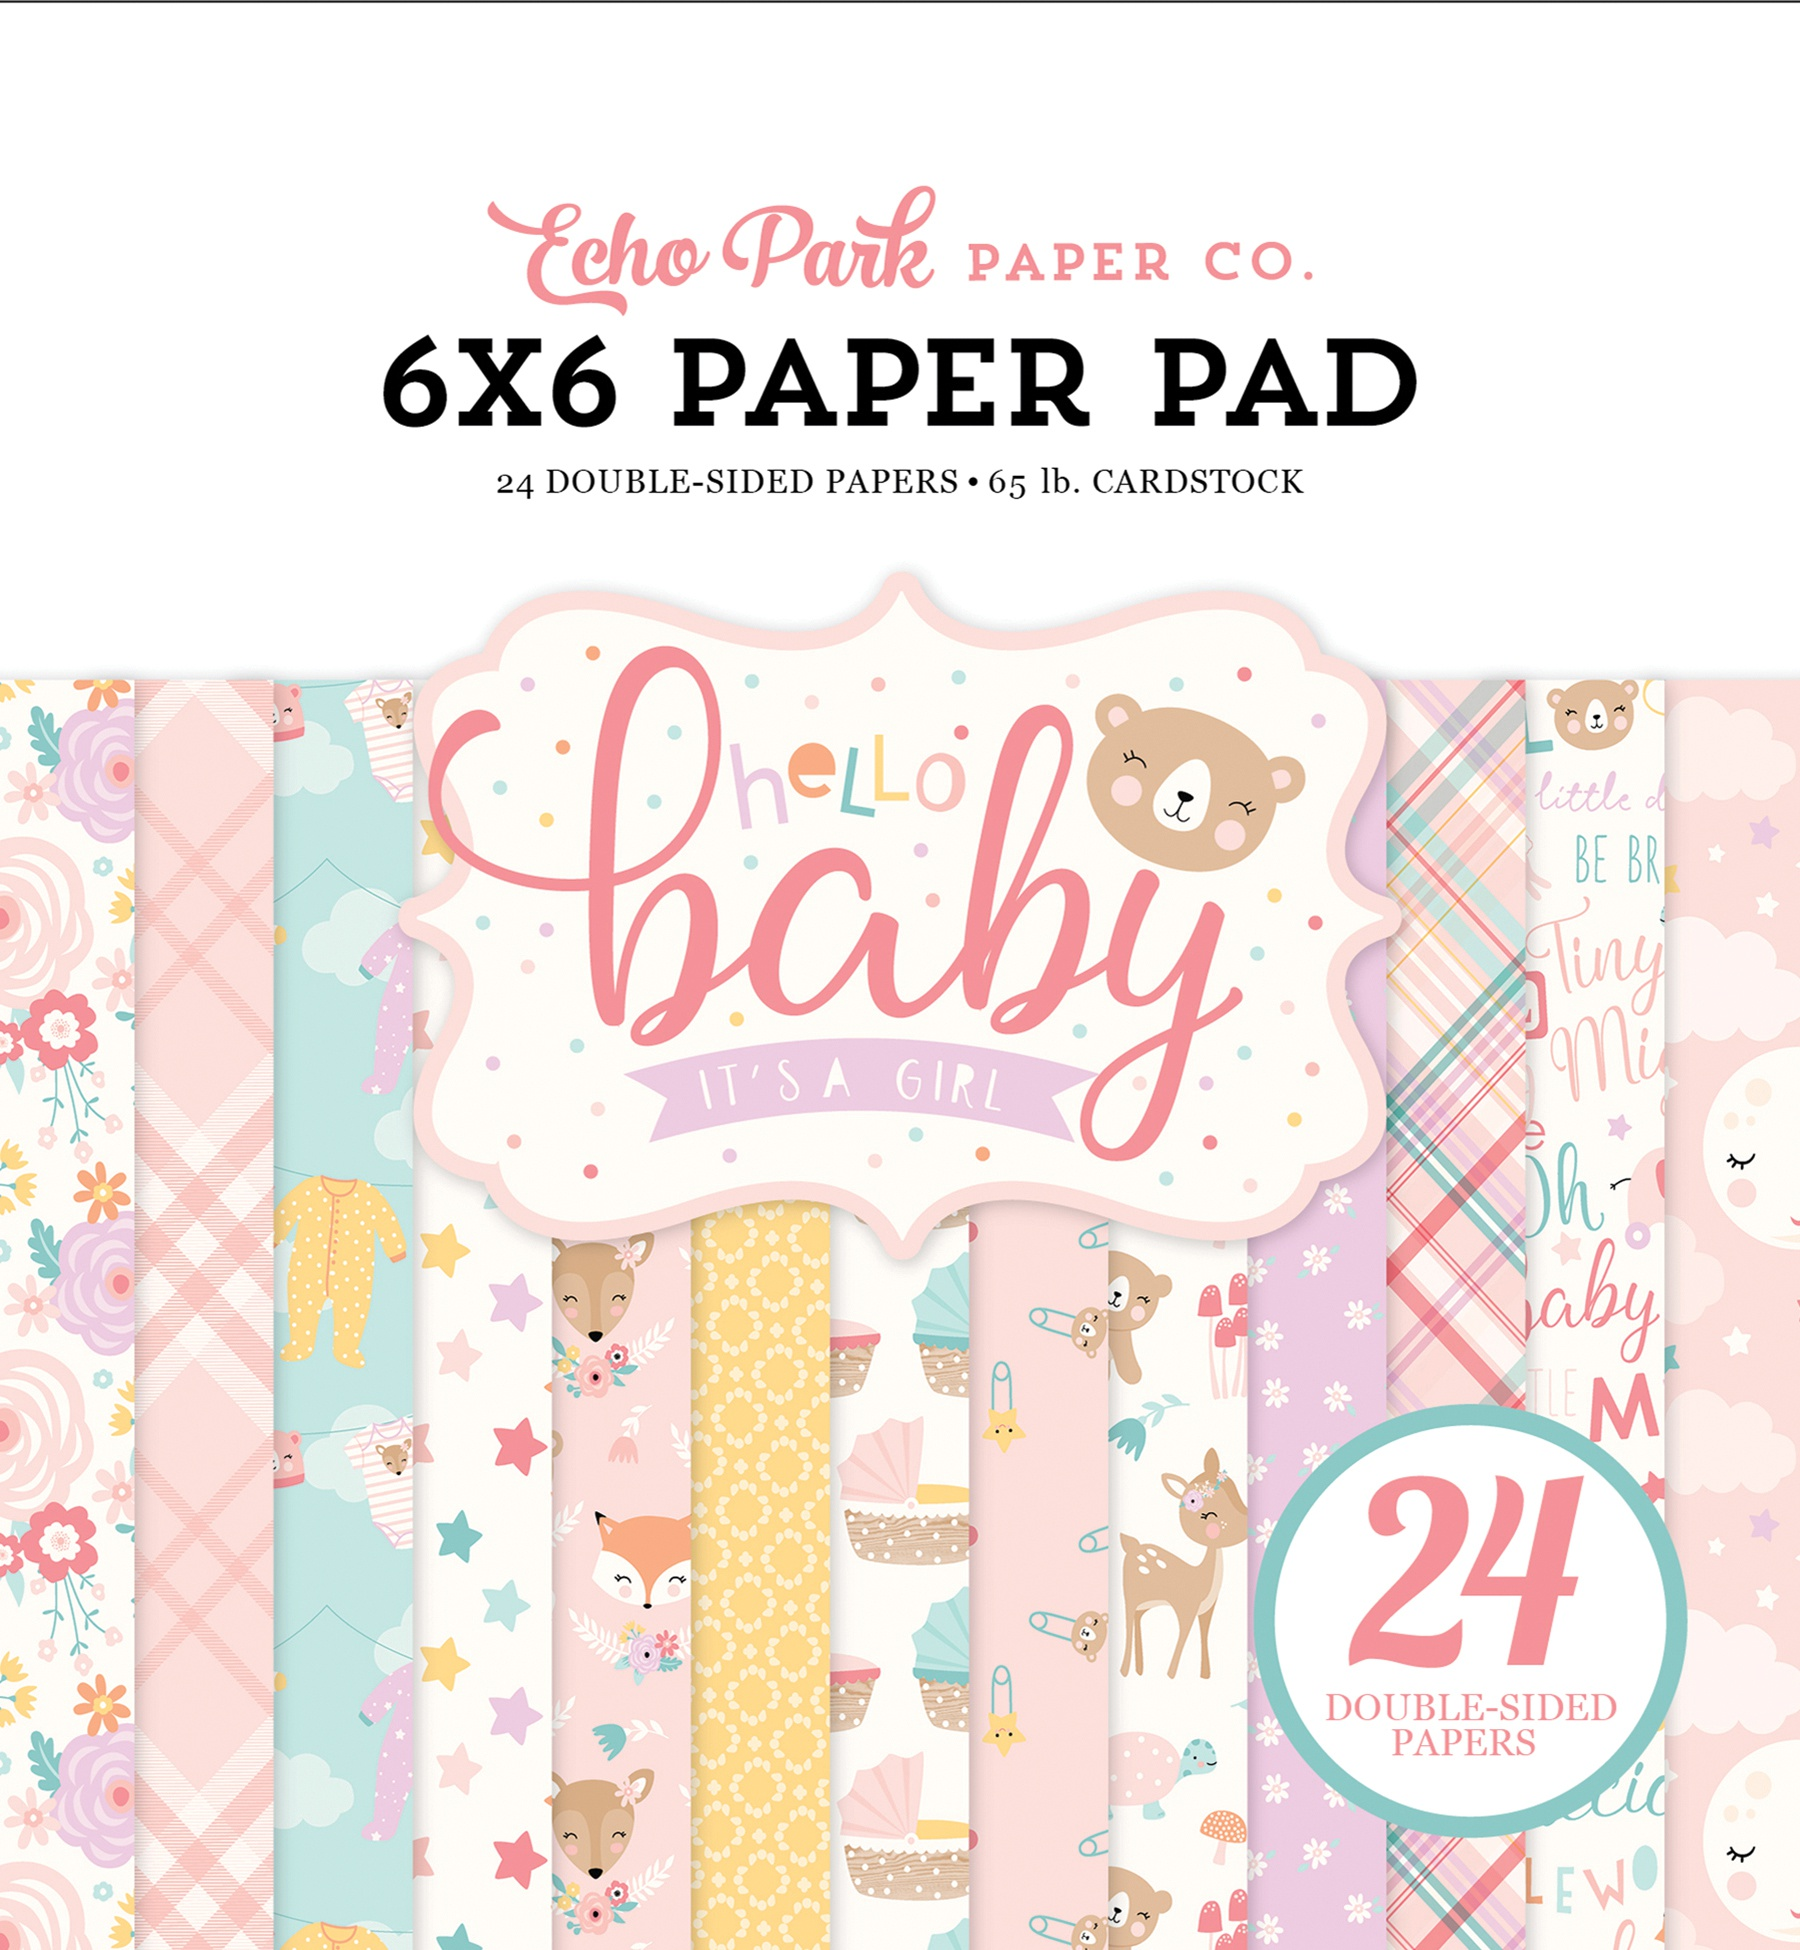 Echo Park Double-Sided Paper Pad 6X6 24/Pkg-Hello Baby Girl, 12 Designs/2 Each